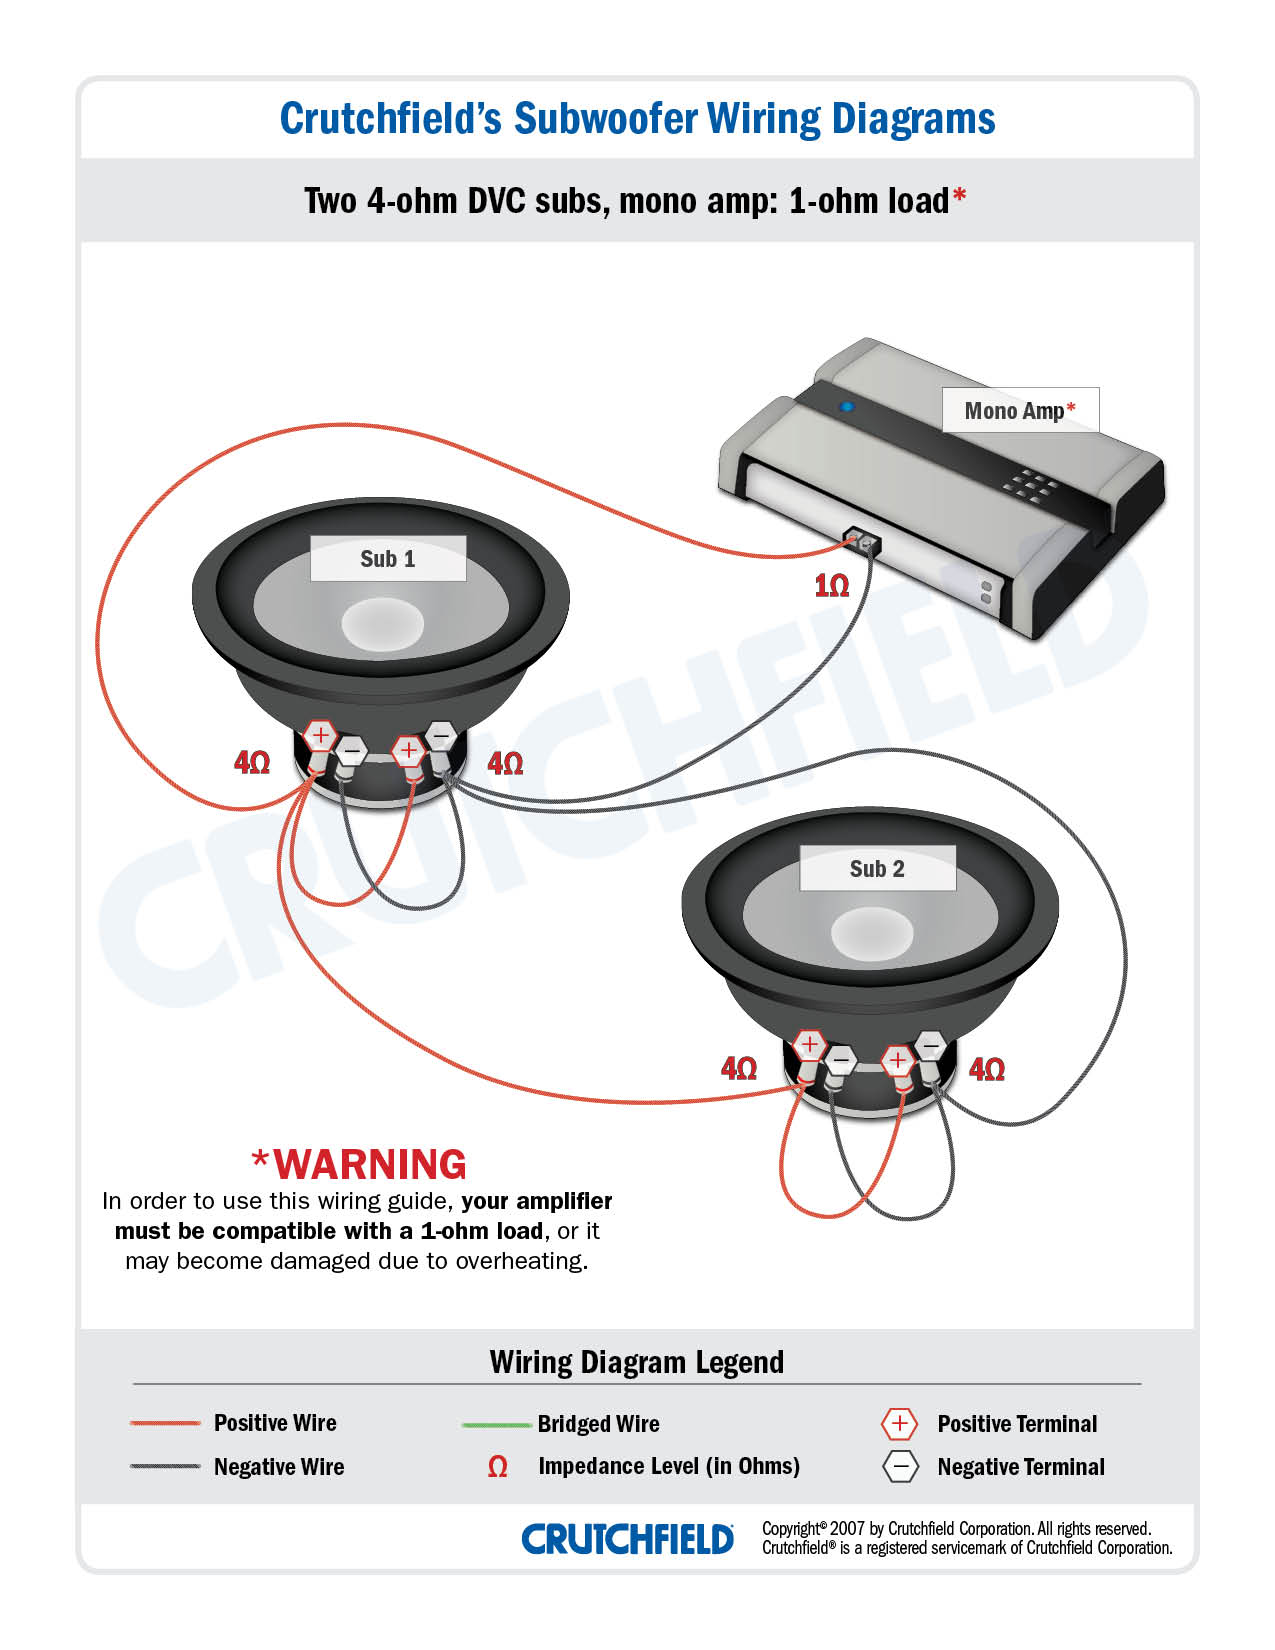 2 DVC 4 ohm mono low imp subwoofer wiring diagrams Kicker Cx300.1 at edmiracle.co